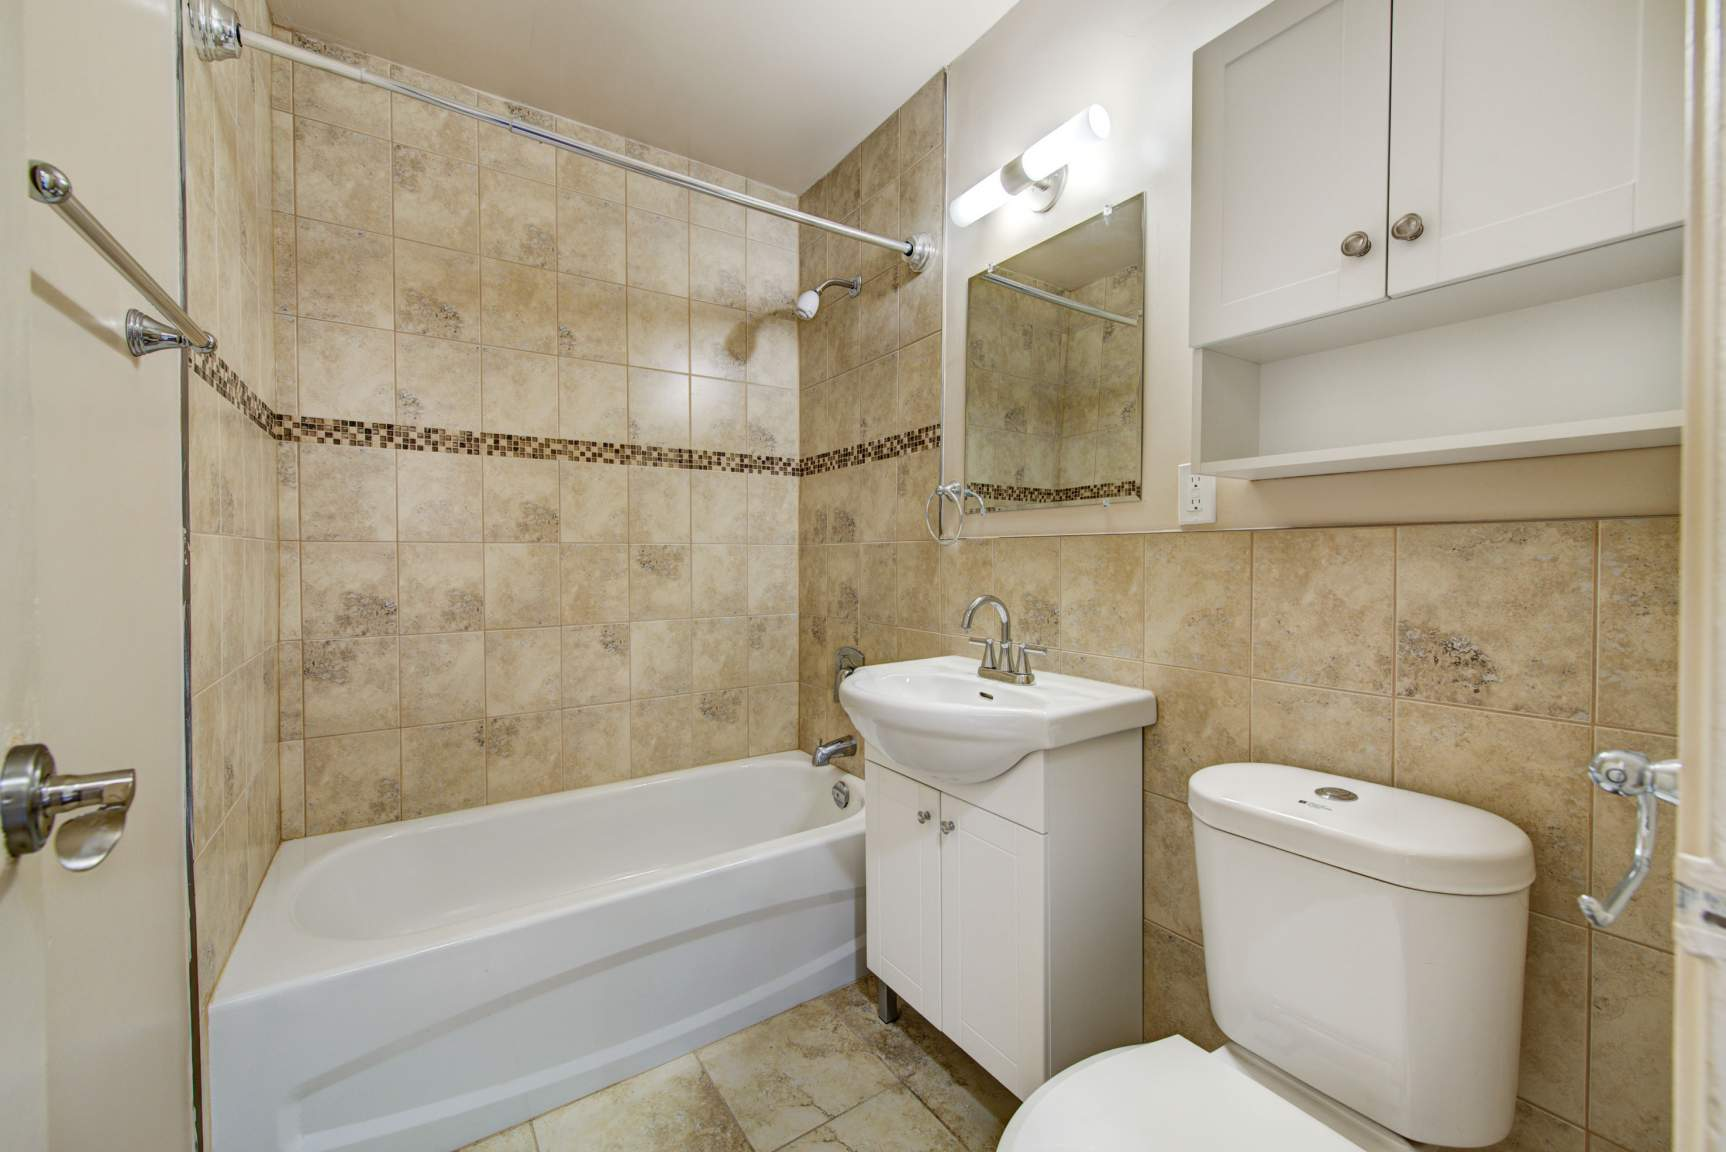 Studio / Bachelor Apartments for rent in Toronto at Lake Promenade Community - Photo 15 - RentersPages – L400279